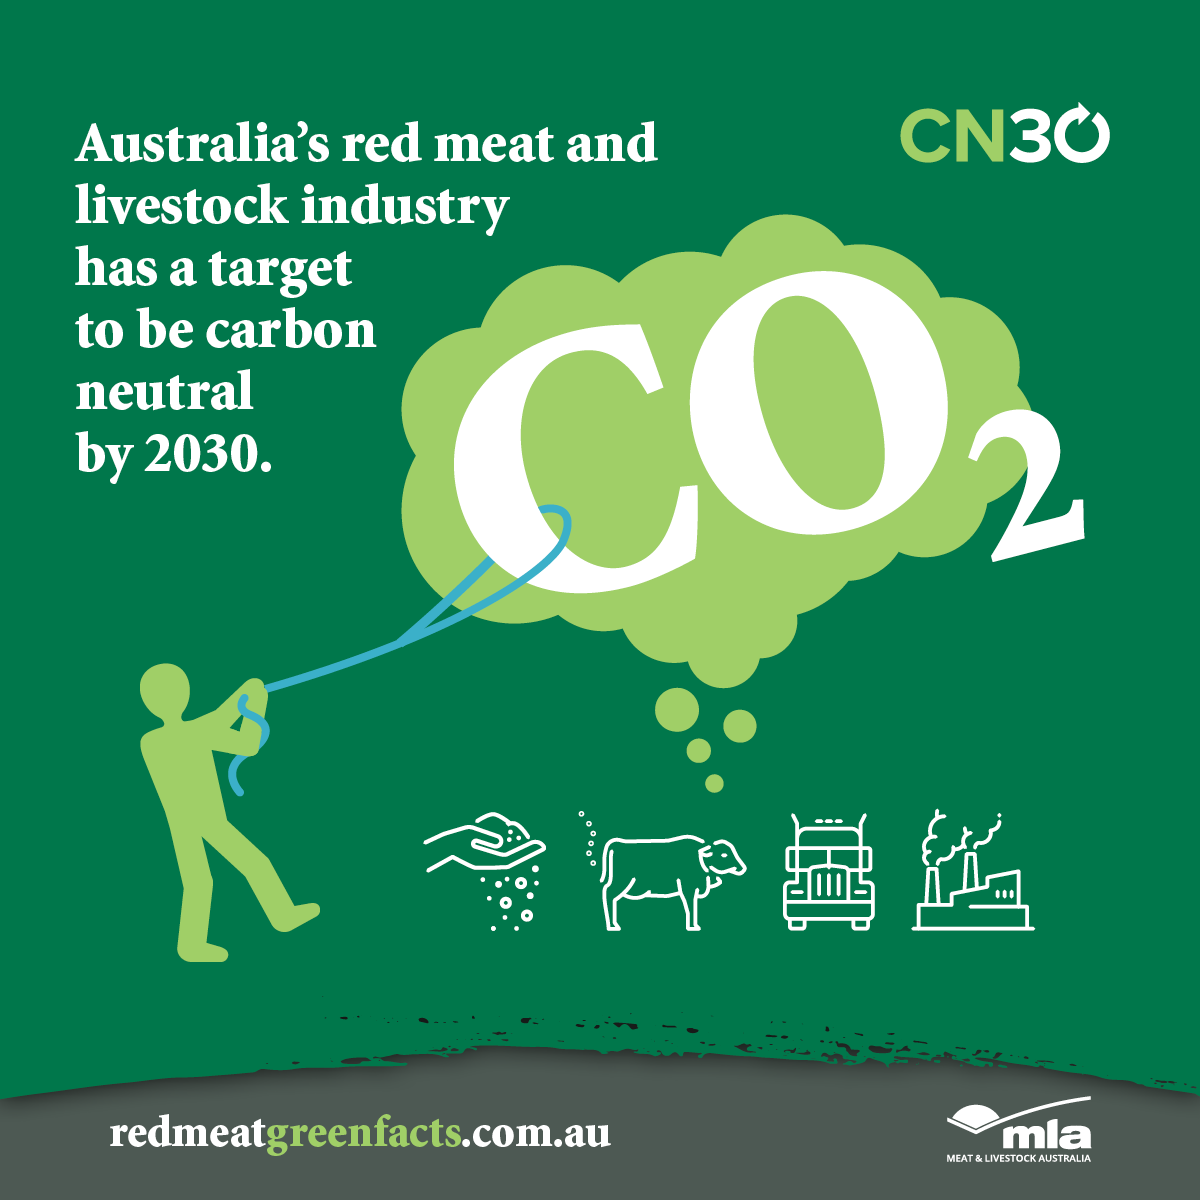 The Australian red meat and livestock industry aims to be carbon neutral by 2030